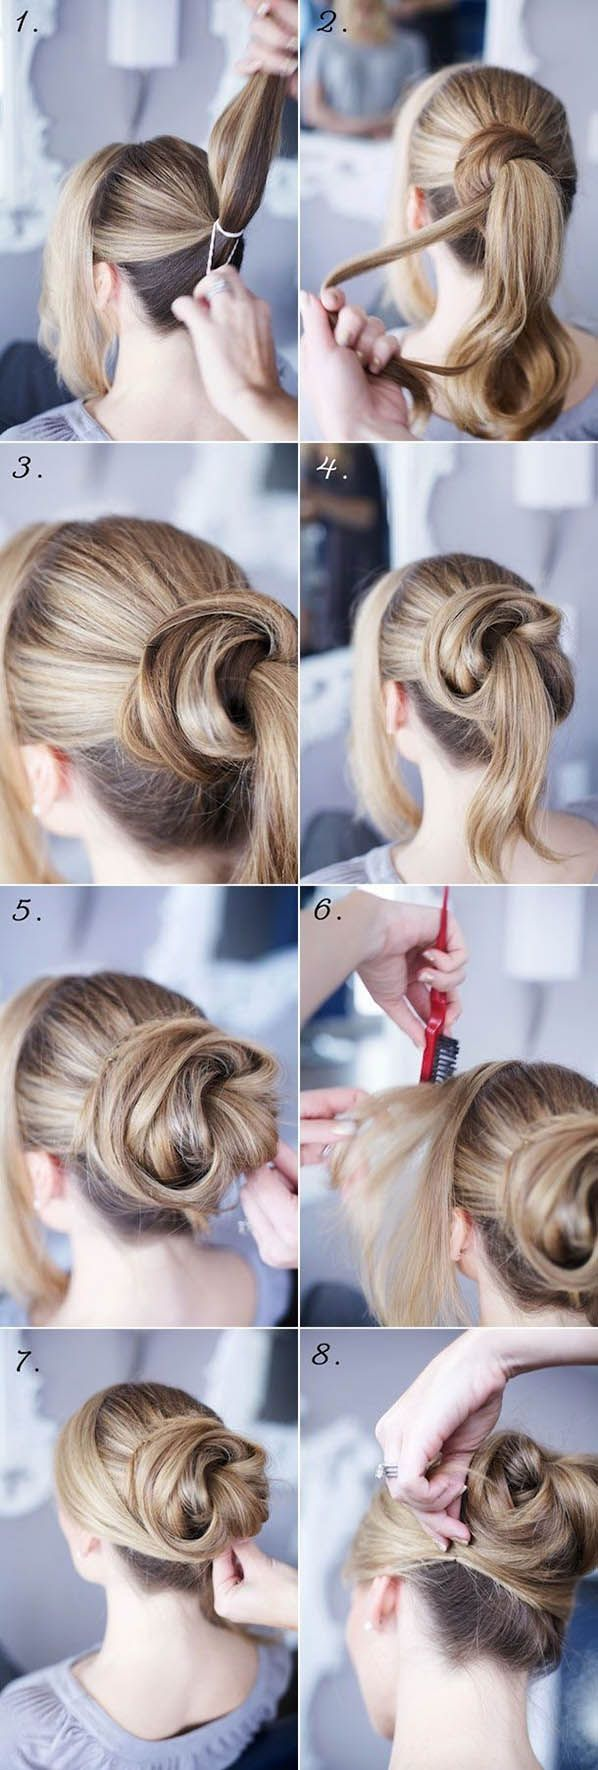 How to bun hairstyles step by step - Awesome Cool And Easy Party Hairstyle Step By Step For Ladies 2015